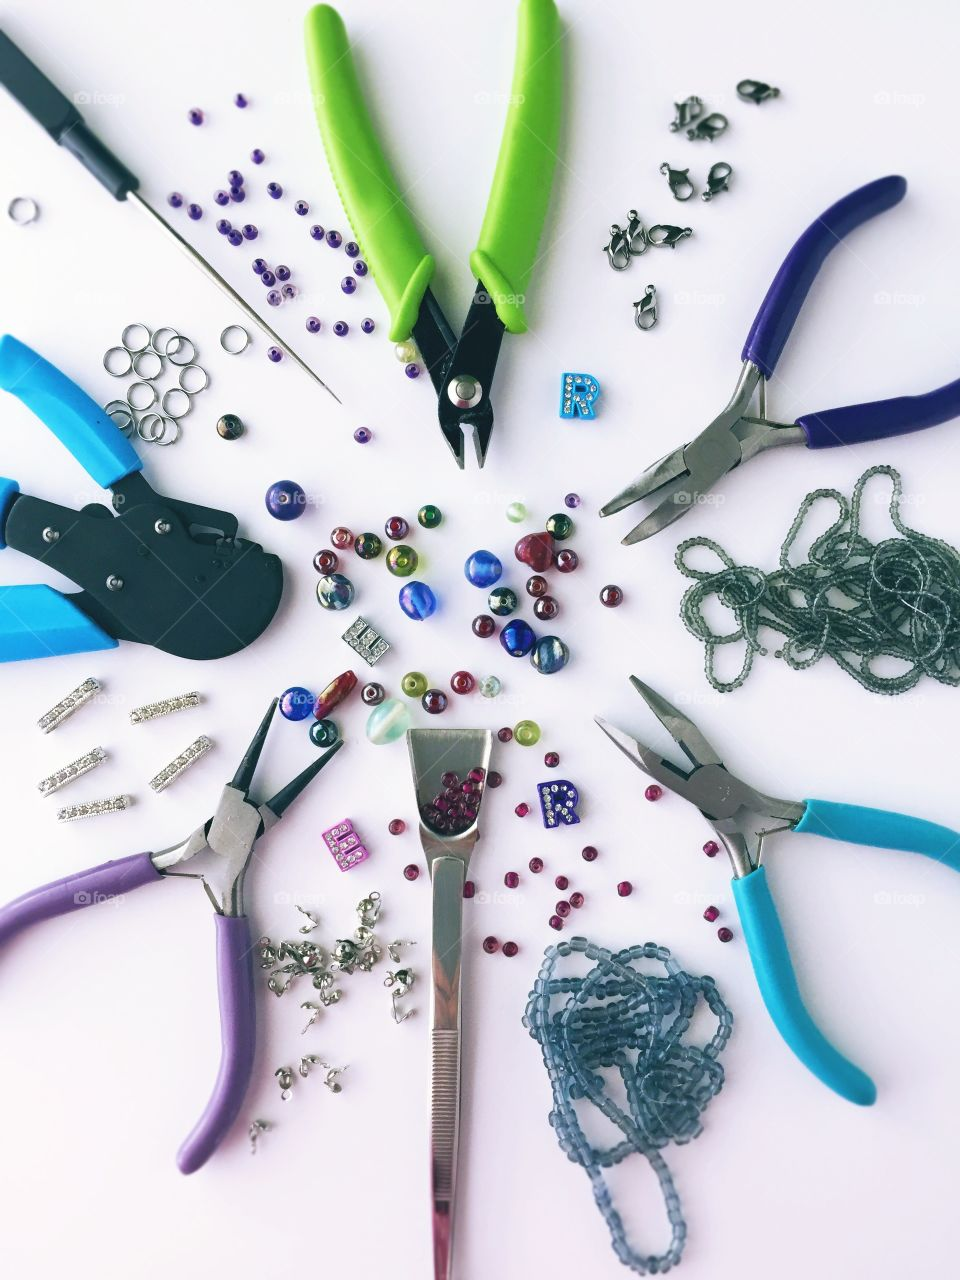 Arts & Crafts Supply - beading tools, glass beads, seed beads, rings, fasteners,